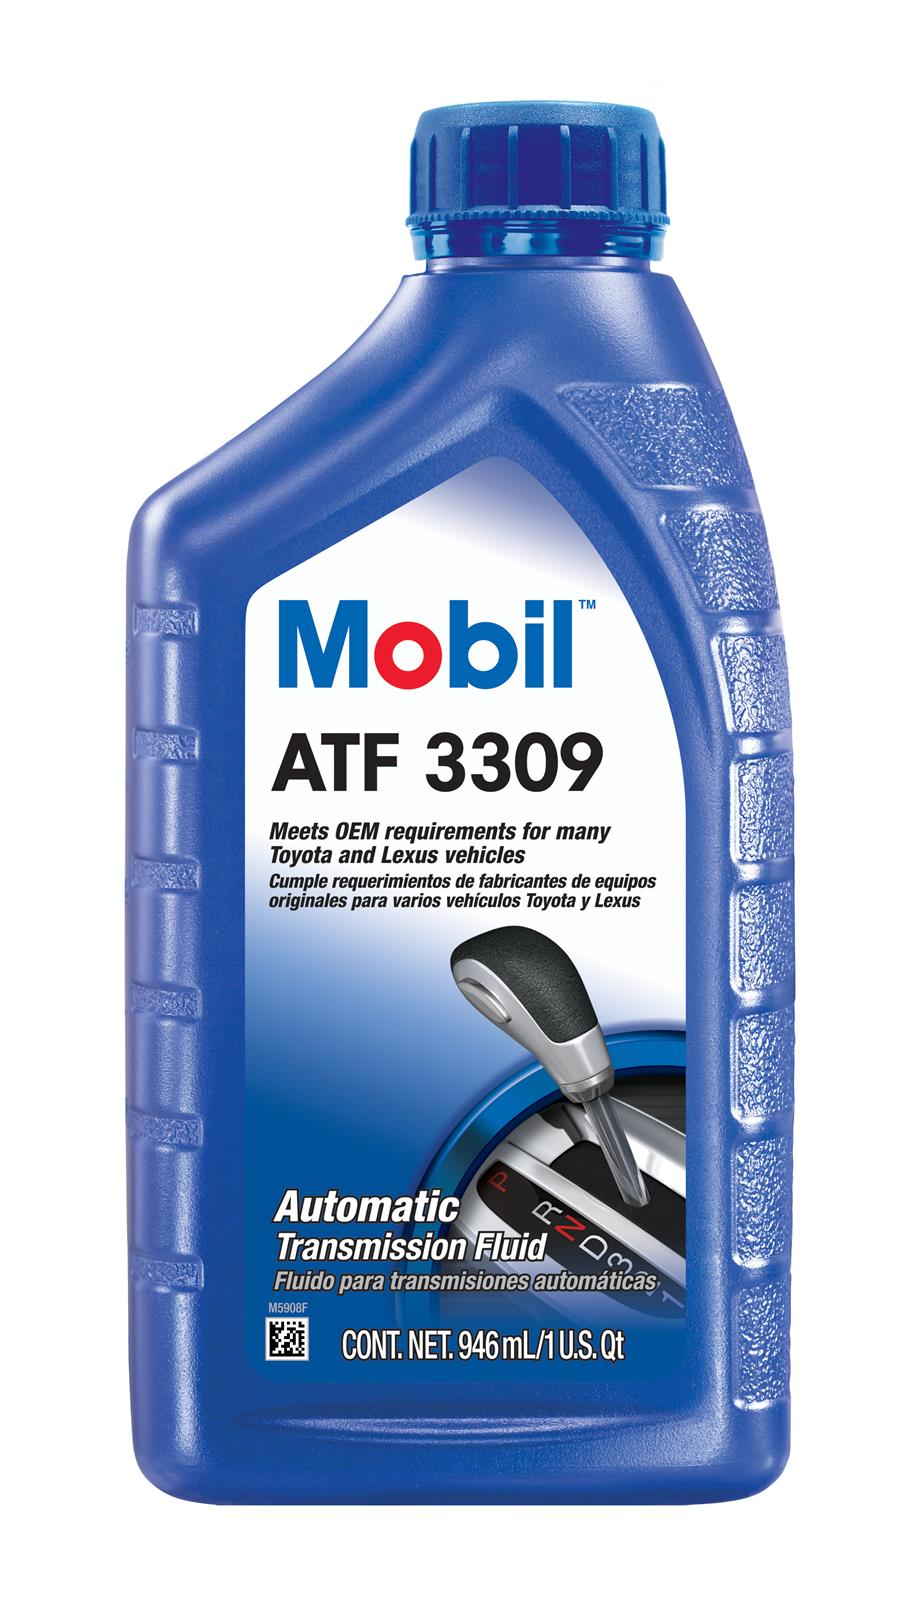 Mobil ATF 3309 123062-1 - Free Shipping on Orders Over $99 at Summit Racing